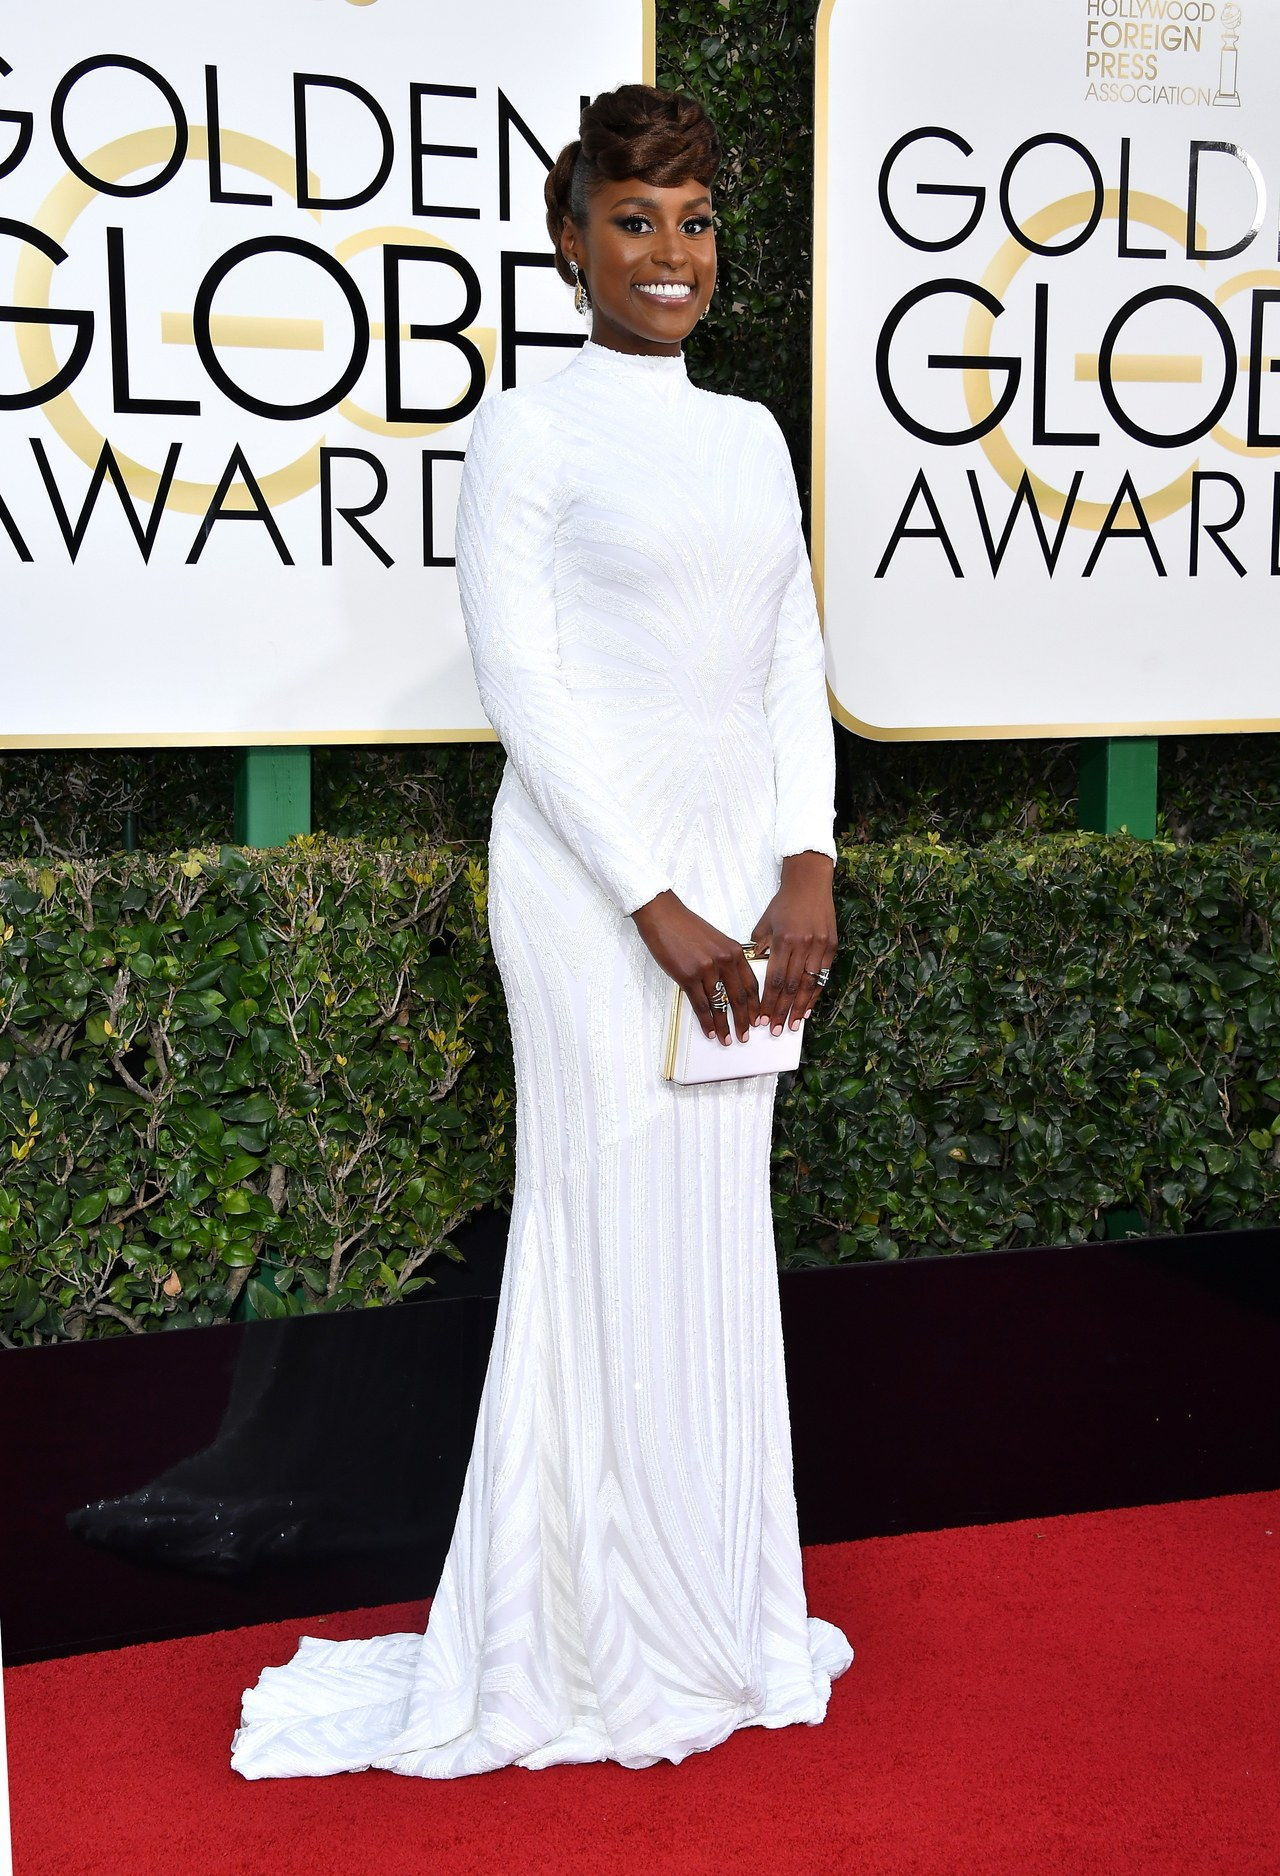 BEVERLY HILLS, CA - JANUARY 08: Actress Issa Rae attends the 74th Annual Golden Globe Awards at The Beverly Hilton Hotel on January 8, 2017 in Beverly Hills, California. (Photo by Steve Granitz/WireImage)